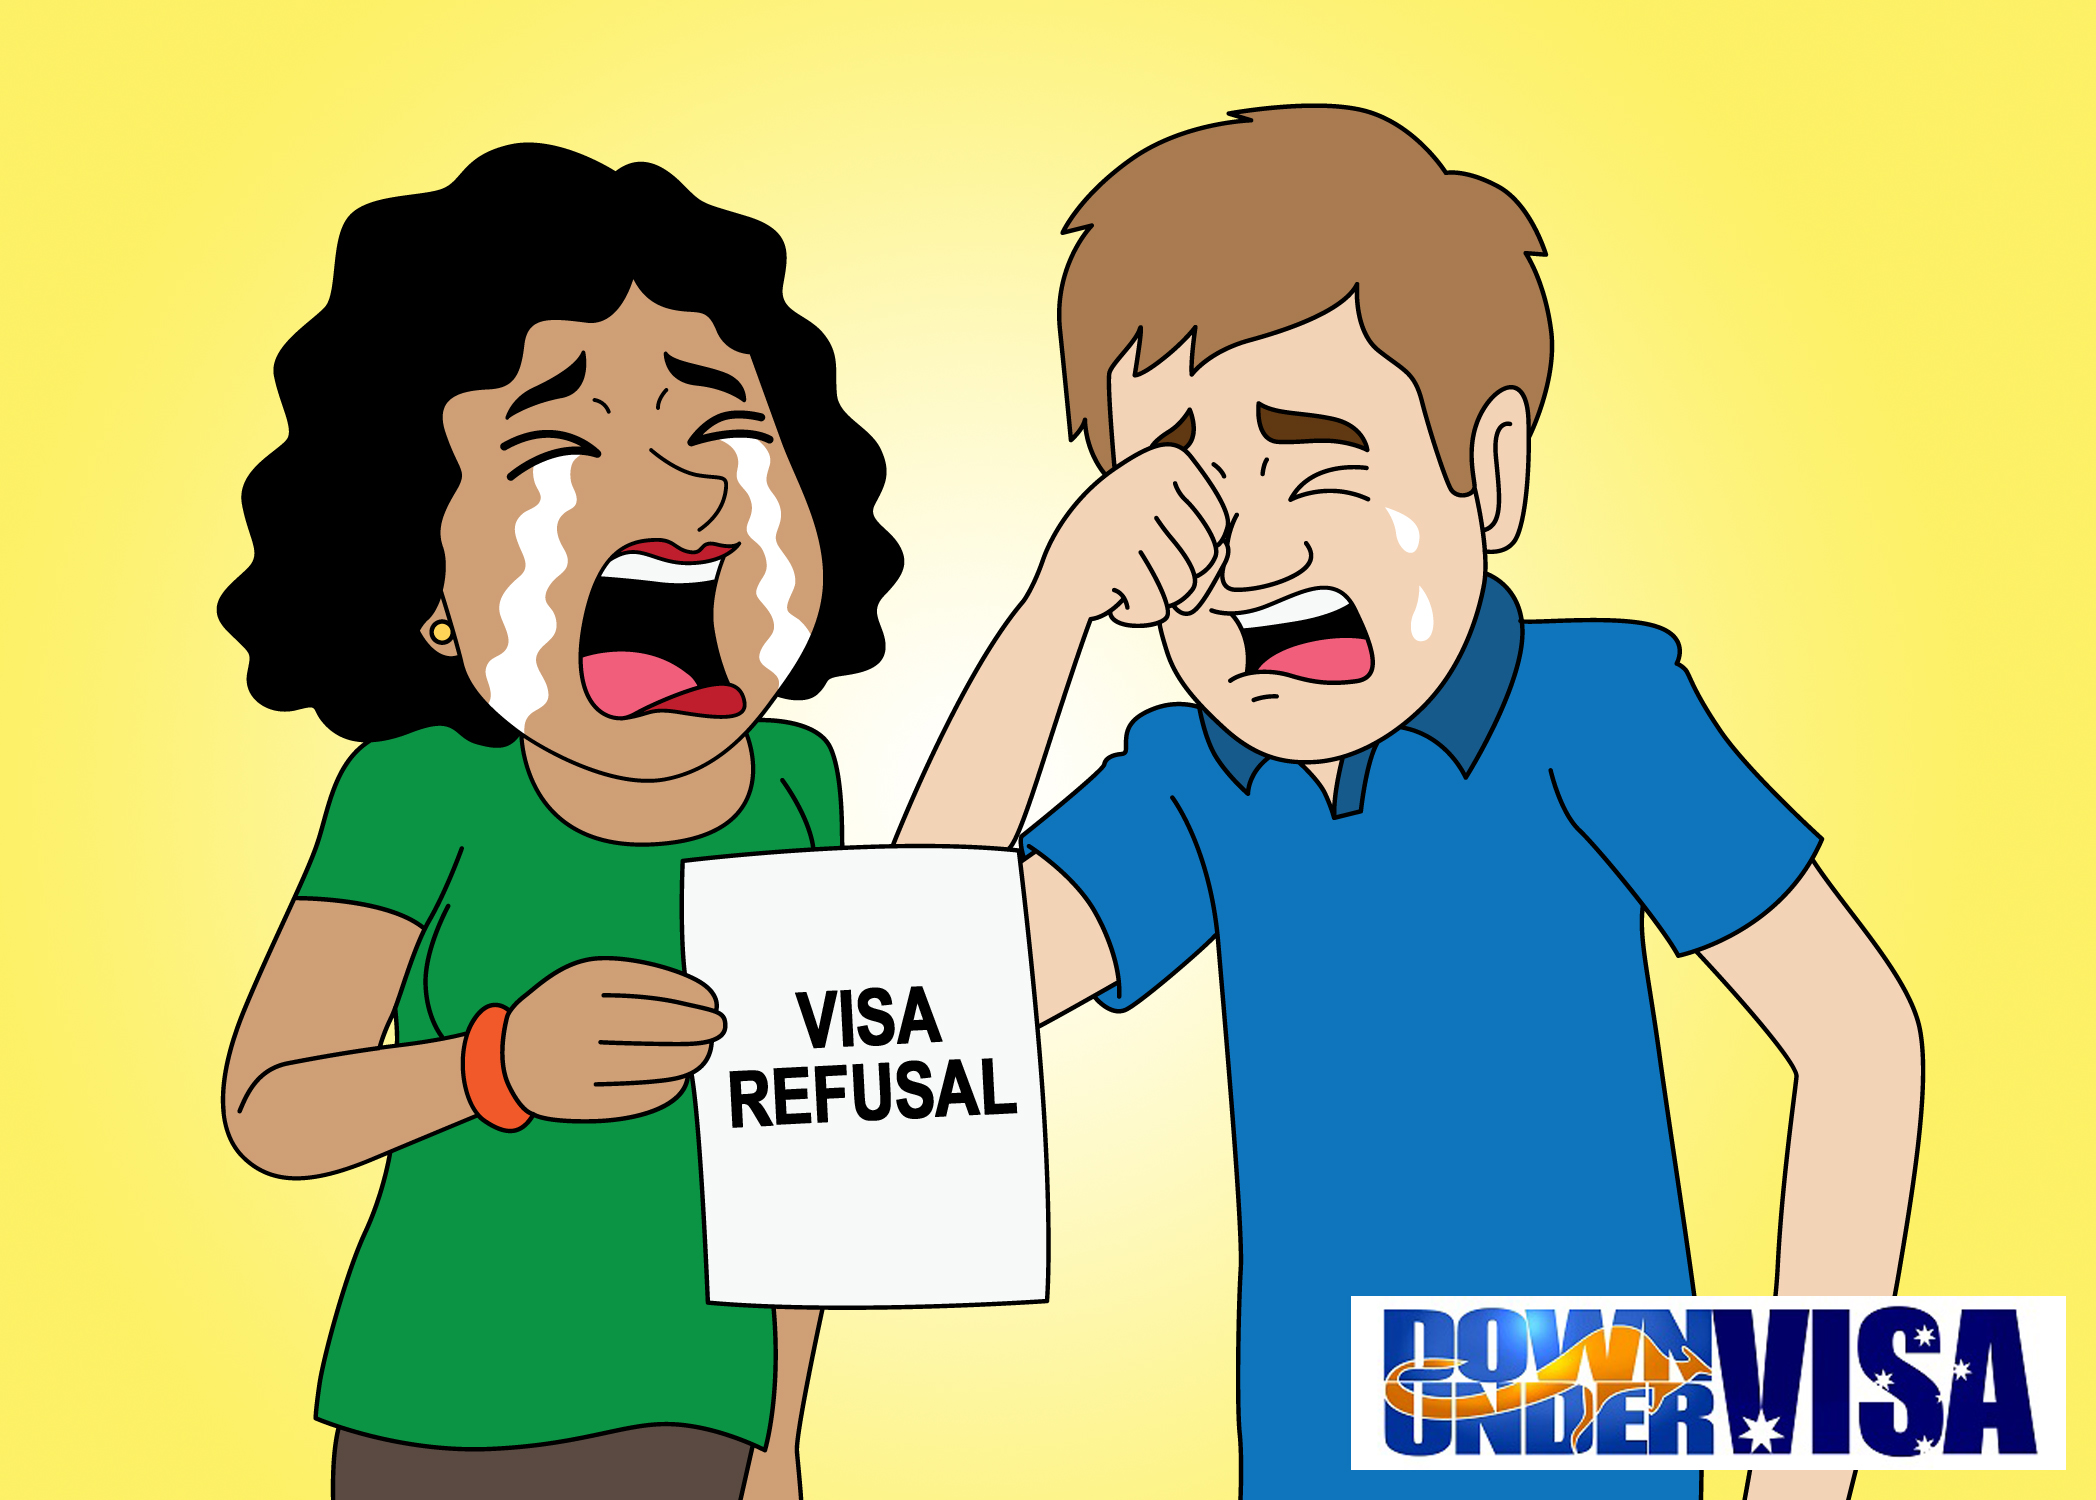 An Australian tourist visa refusal can be traumatic to an Australian Filipina couple